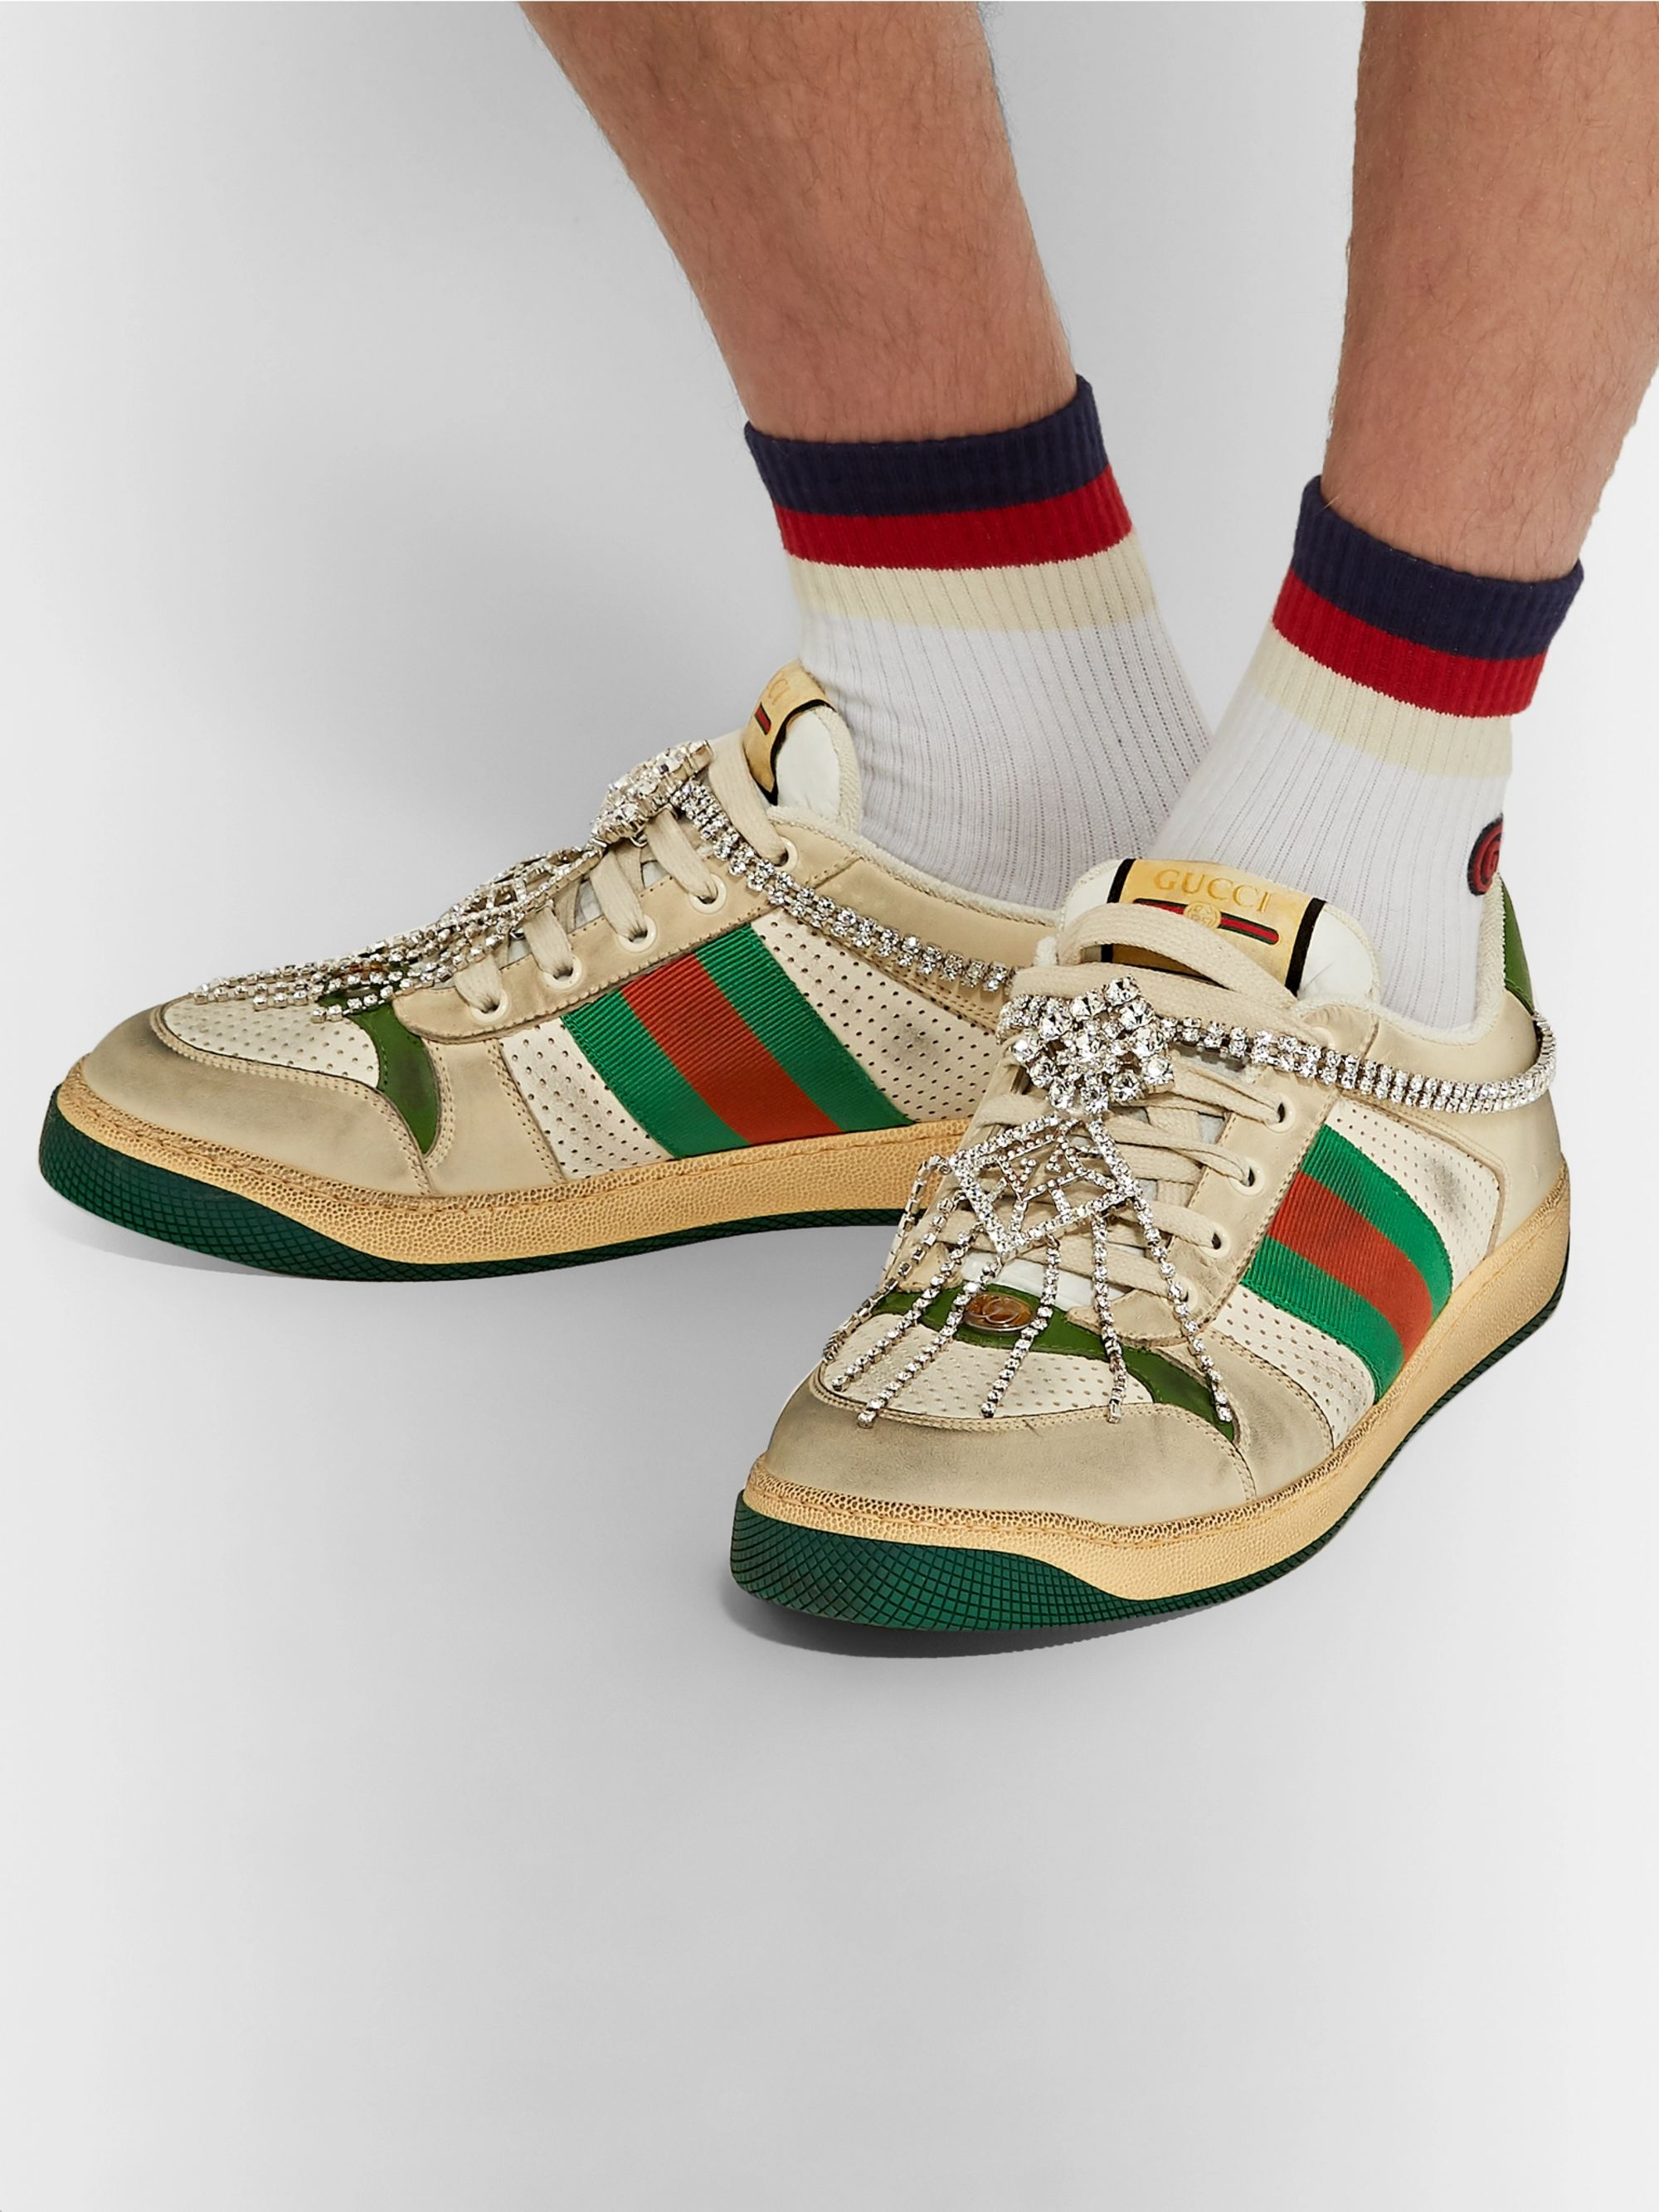 Gucci Virtus Distressed Crystal-Embellished Leather and Webbing Sneakers